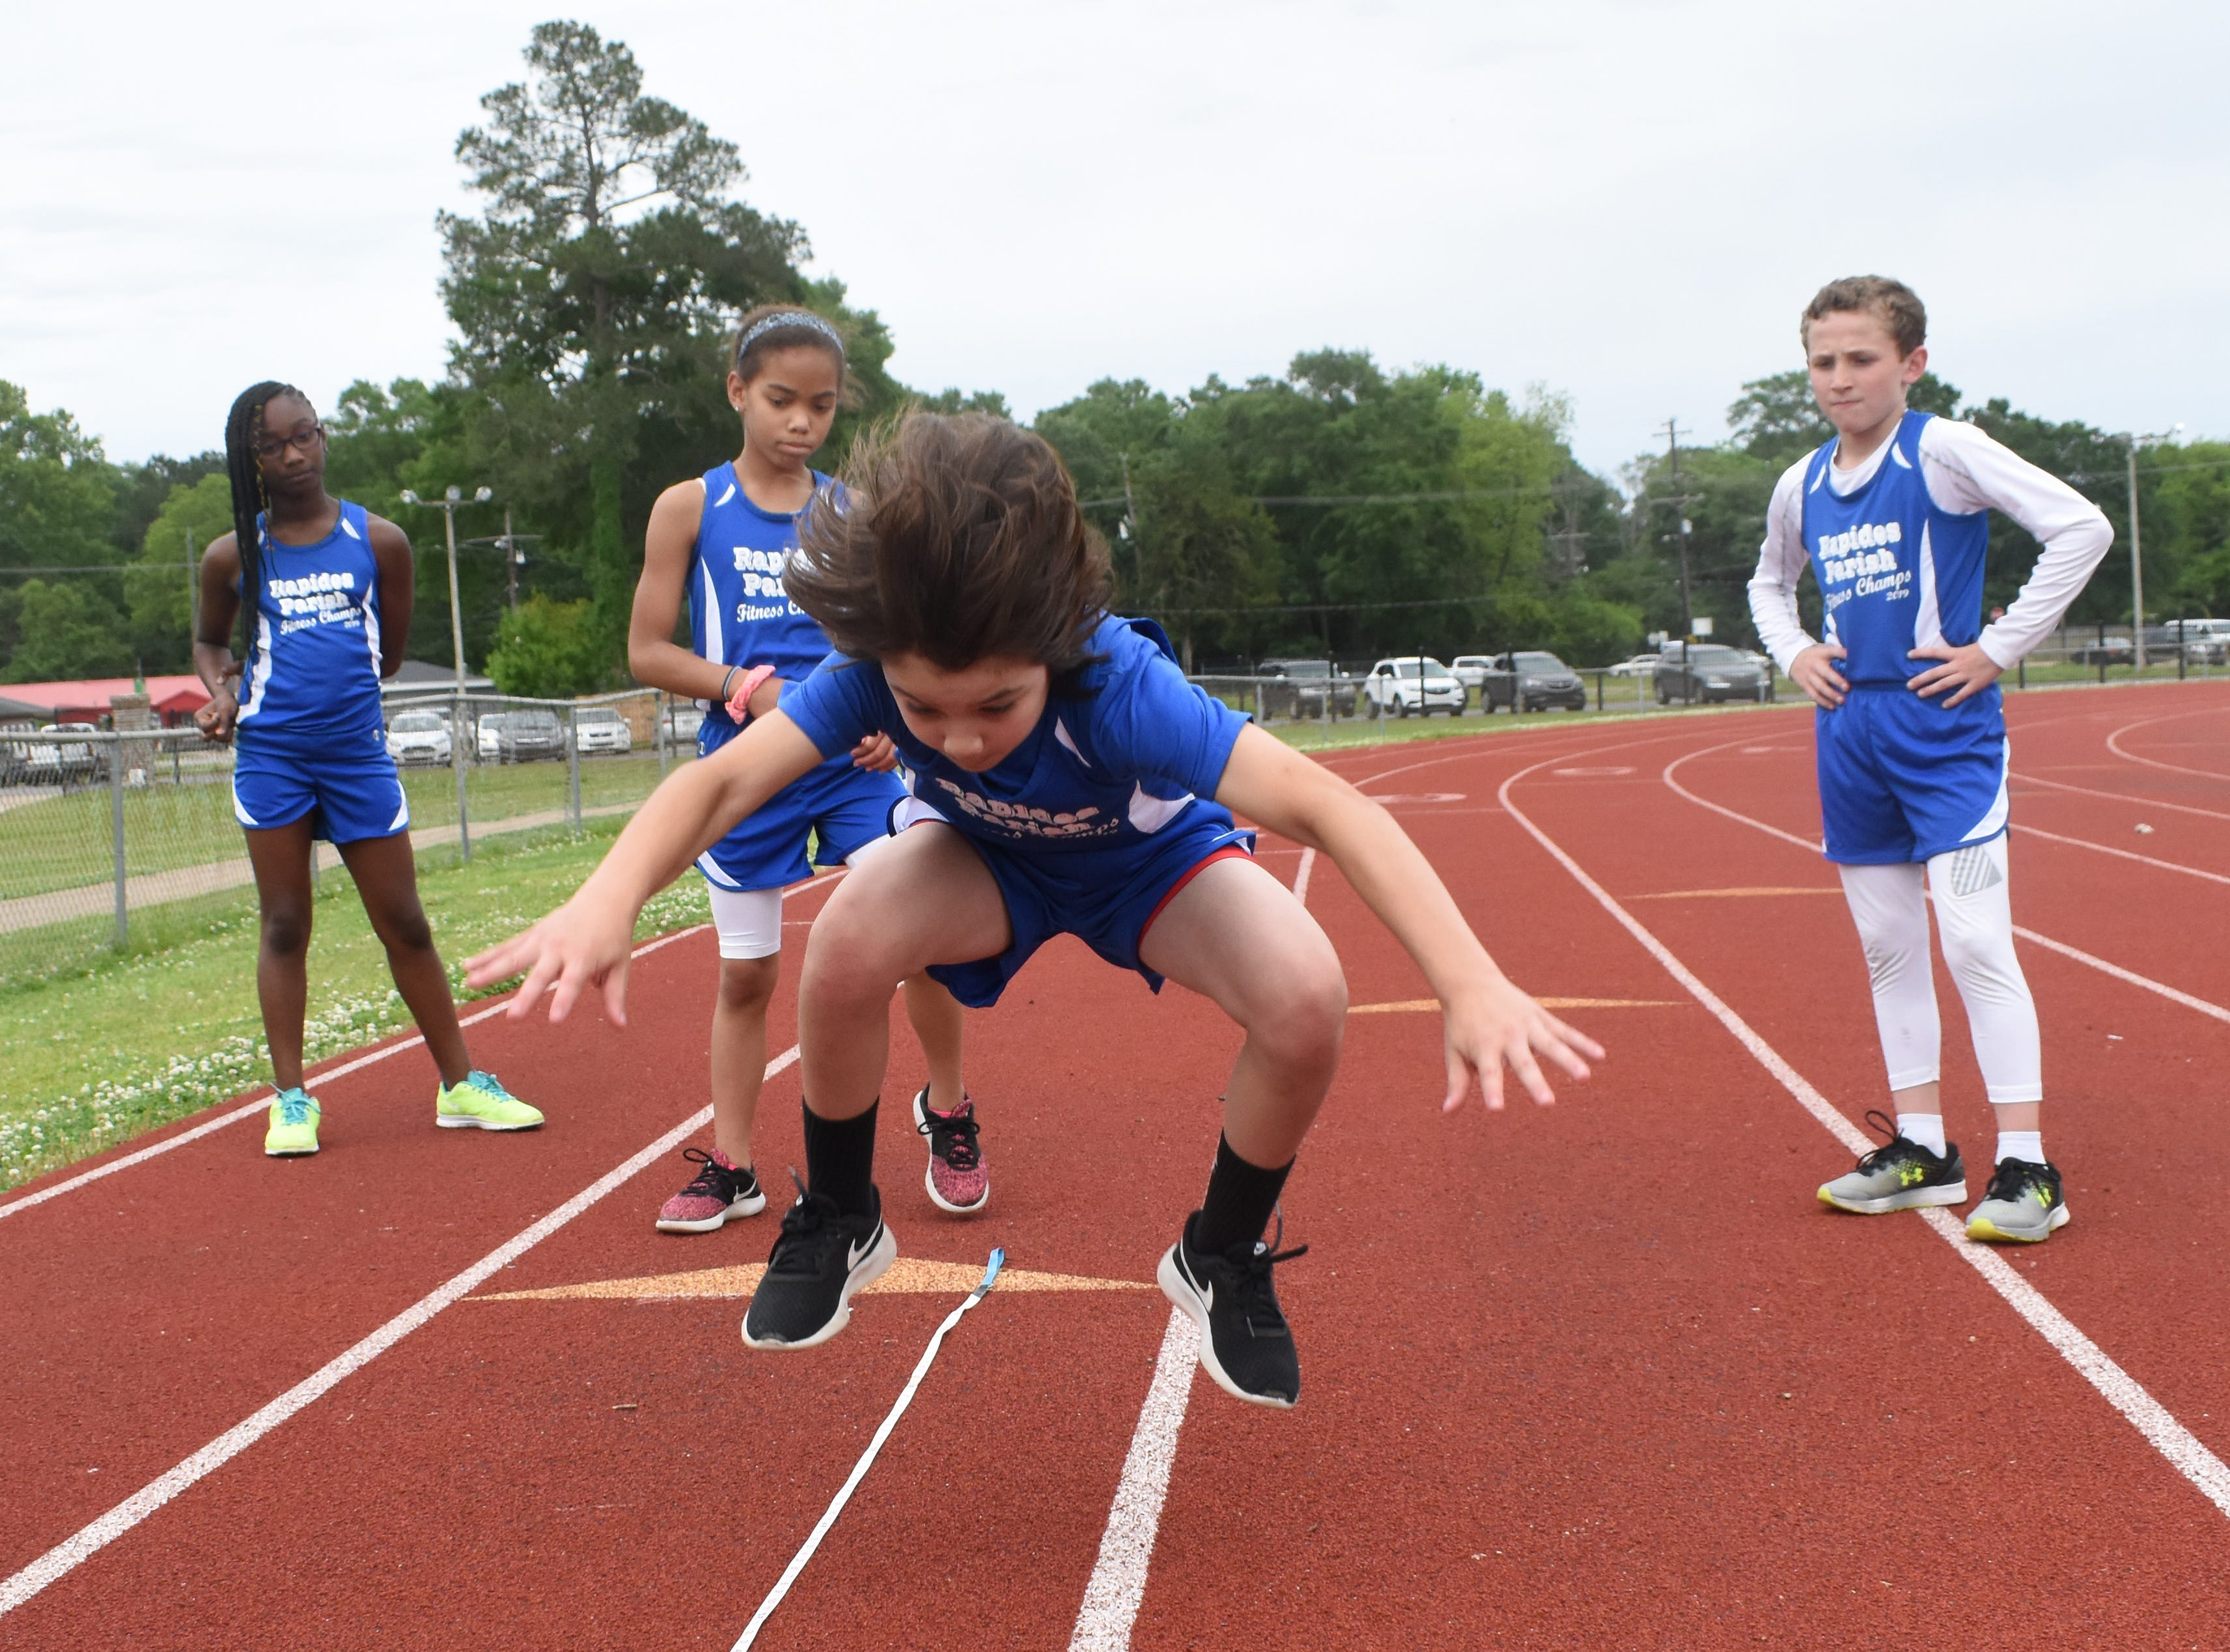 Bryce Warthen (front) of Hayden Lawrence Elementary School, completes a long jump. Bryce is part the 2019 Rapides Parish Fitness Team. He and five other Rapides Parish elementary school students will compete in the 2019 State Championship Fitness Meet to be held Saturday, April 27, 2019 at Alexandria Senior High School. The meet is part of the Governor's Council on Fitness and Sports. Students from throughout Louisiana will compete in seven events: 50-yard dash, sit and reach, pull-ups,  shuttle run, curl-ups (sit-ups), standing long jump, and the 600-yard run. For the past three years, the Rapides Parish Fitness Team has placed first at the meet. Dean was the highest scoring boy last year and won the title of 2018 Mr. Fitness for the State of Louisiana. The meet will be from 10 a.m. to 2 p.m.